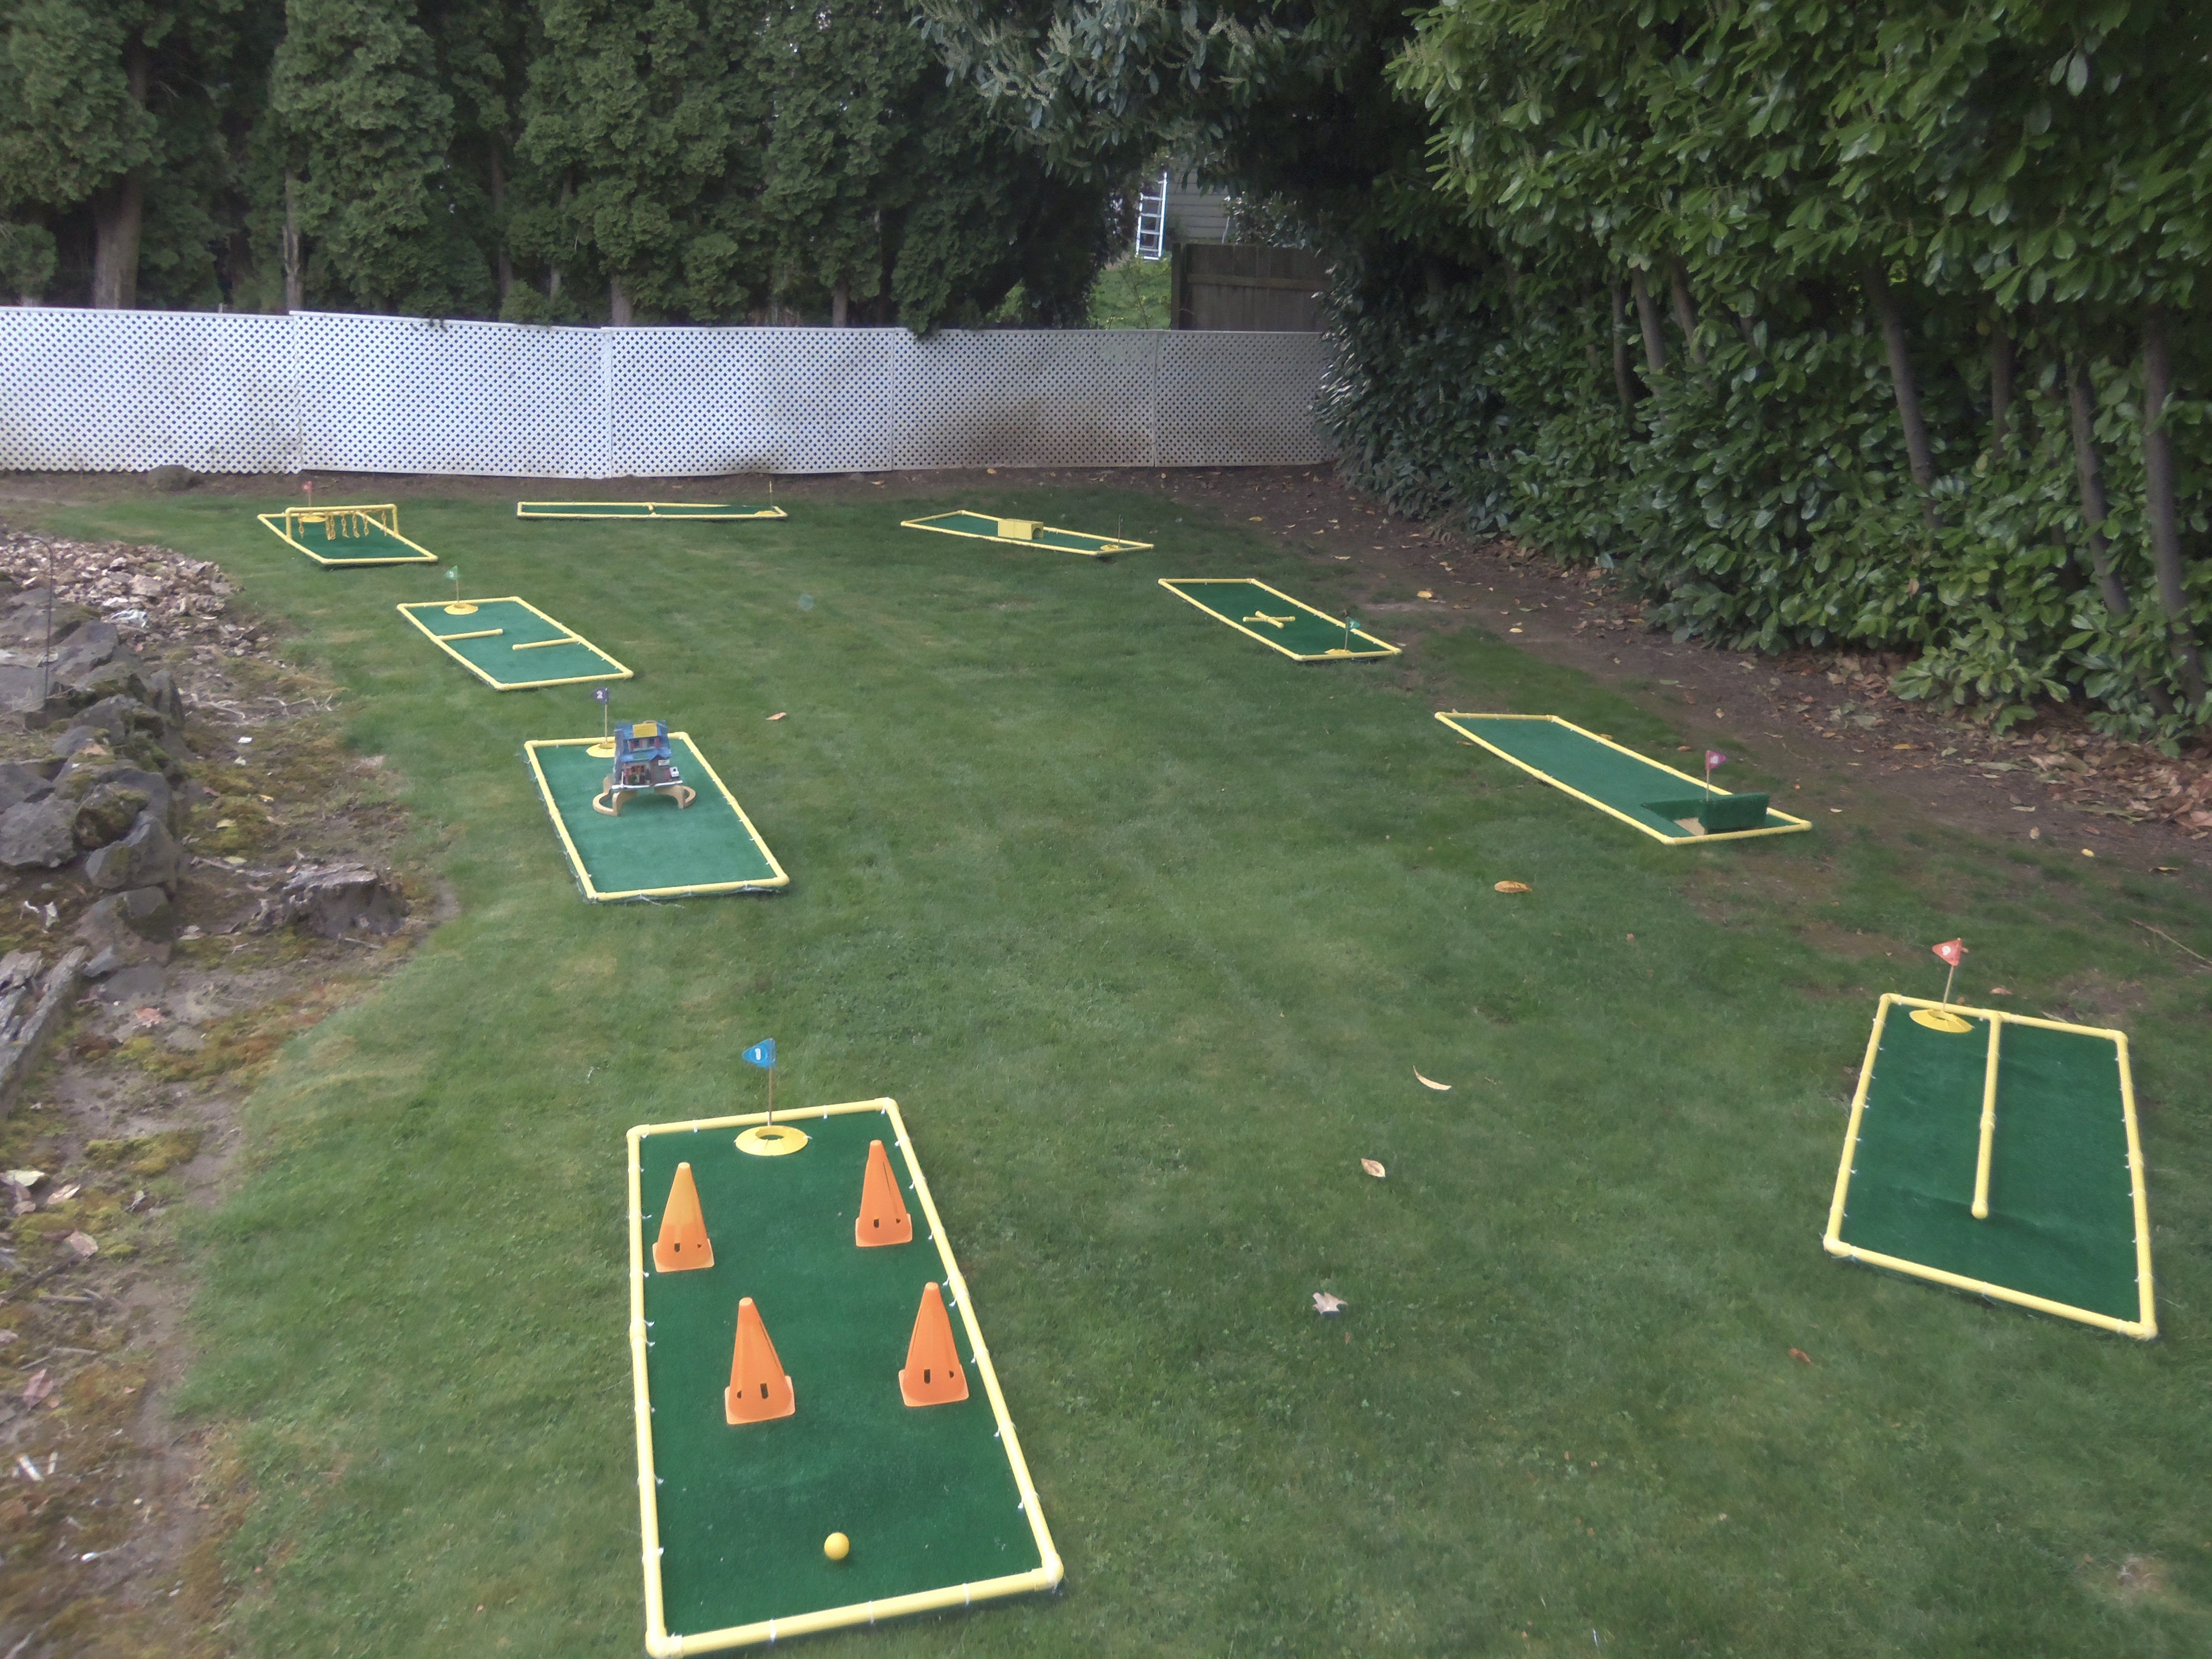 A 9 Hole Course I Layed Out In My Backyard Carnival Games For Kids Carnival Games Outdoor Kids Mini golf in my backyard